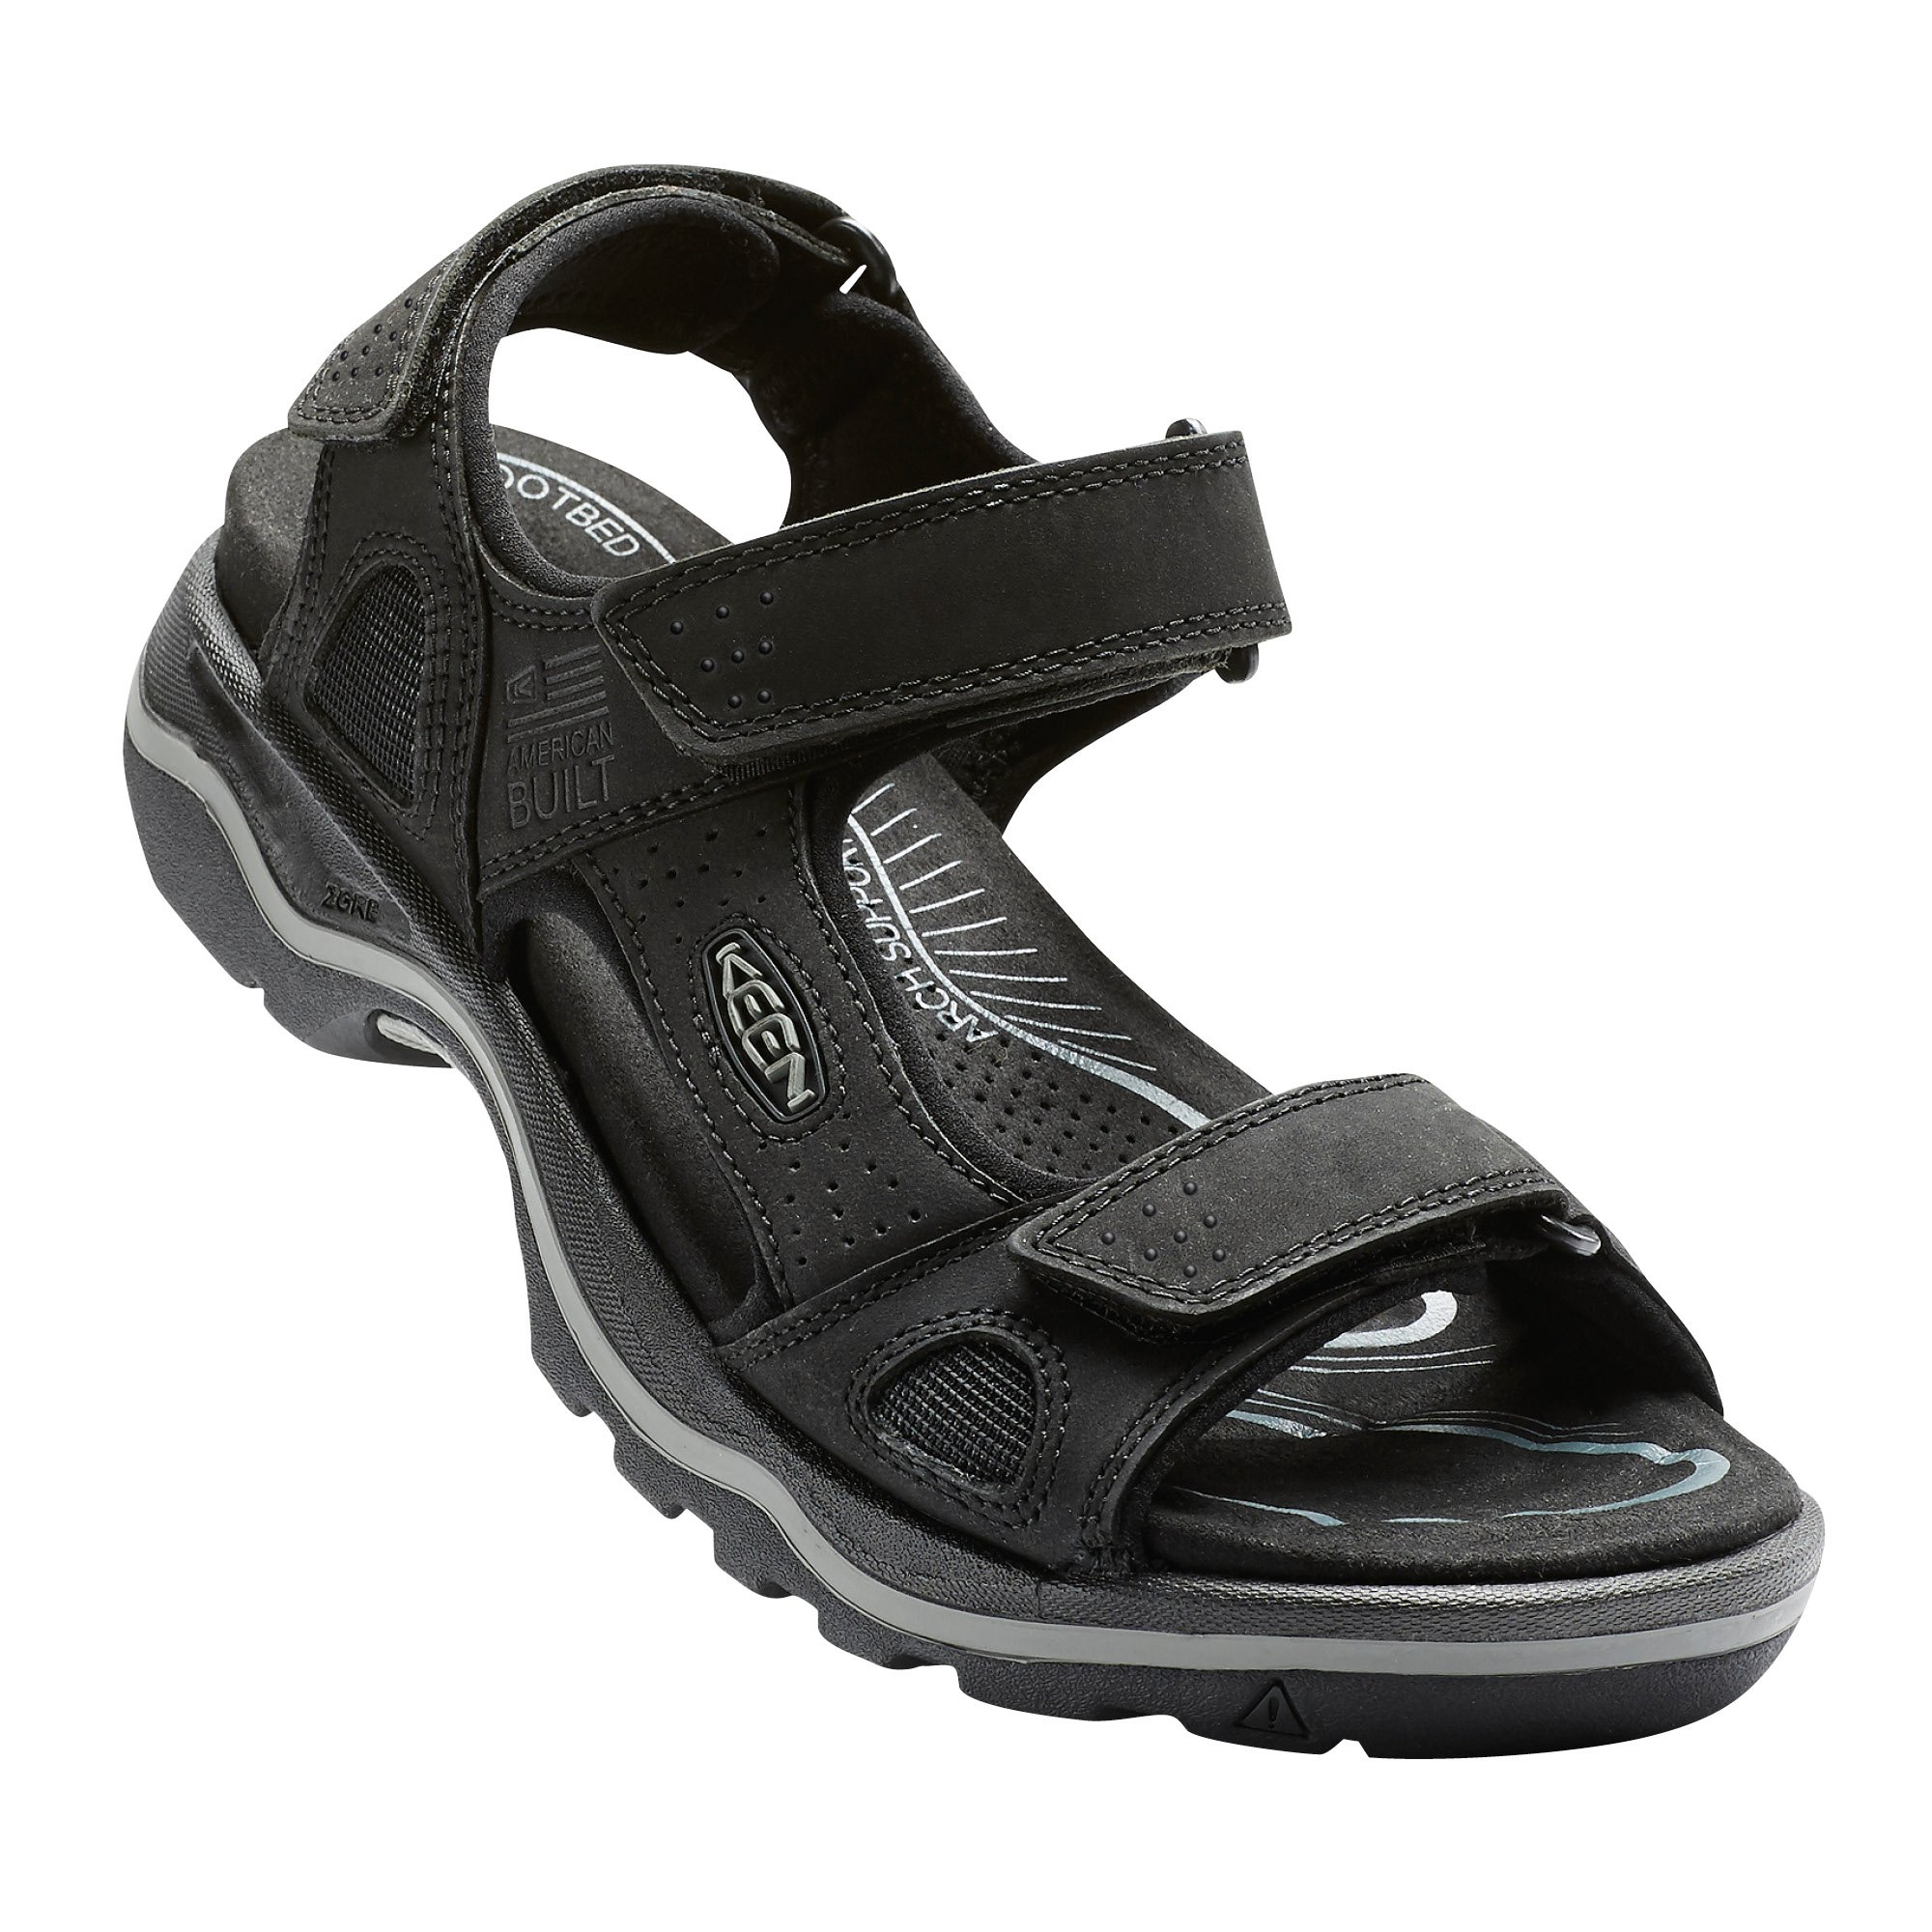 KEEN Men's Rialto 3 Point Sandal, Black/Neutral Gray, 11.5 M US